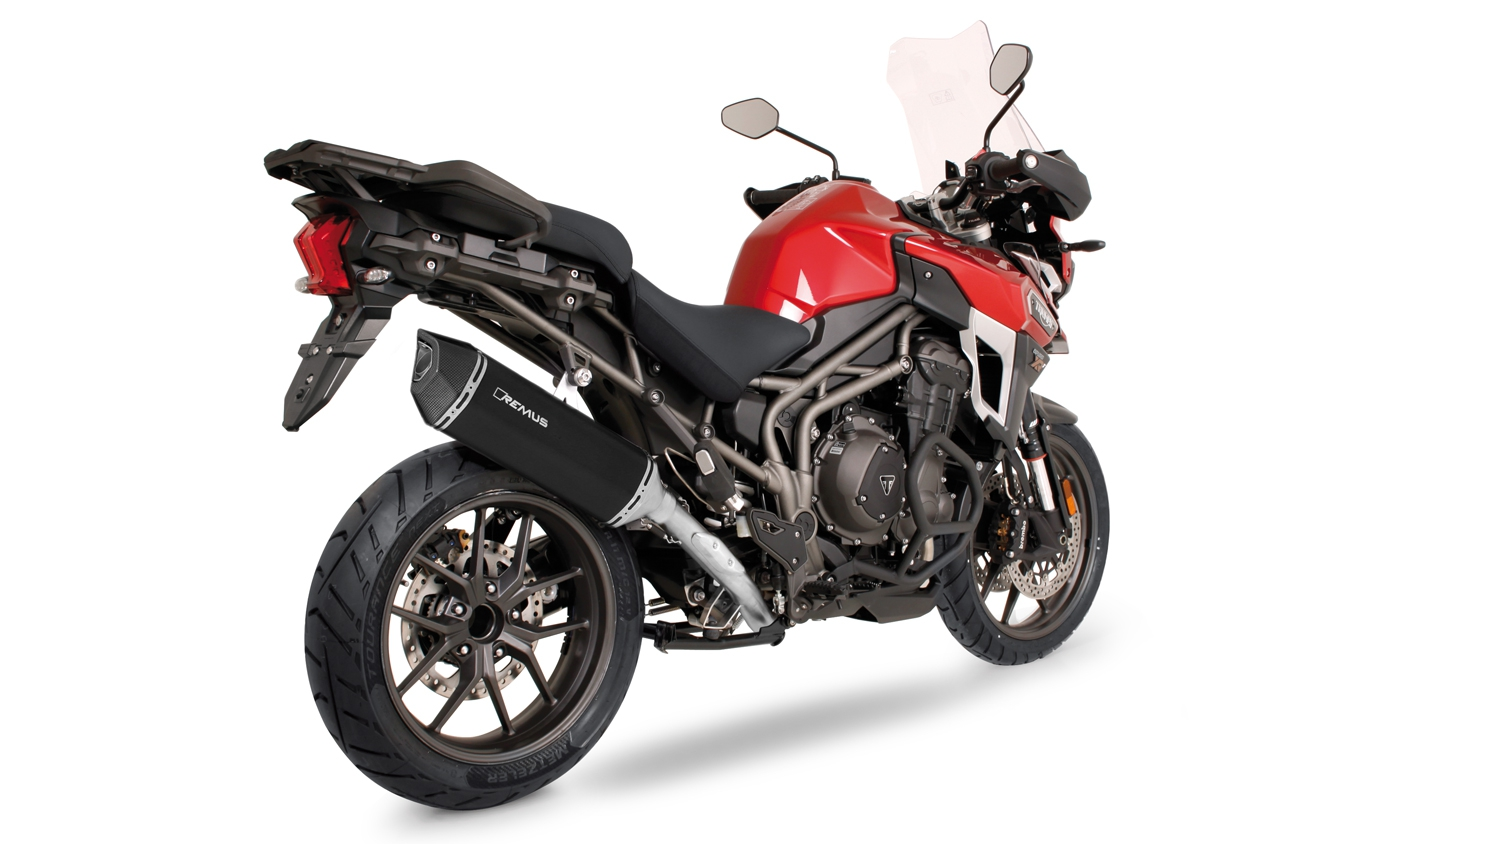 Bike Info 09 16 Triumph Tiger Explorer Mod16 Exhaust System Diagram Related Keywords Suggestions